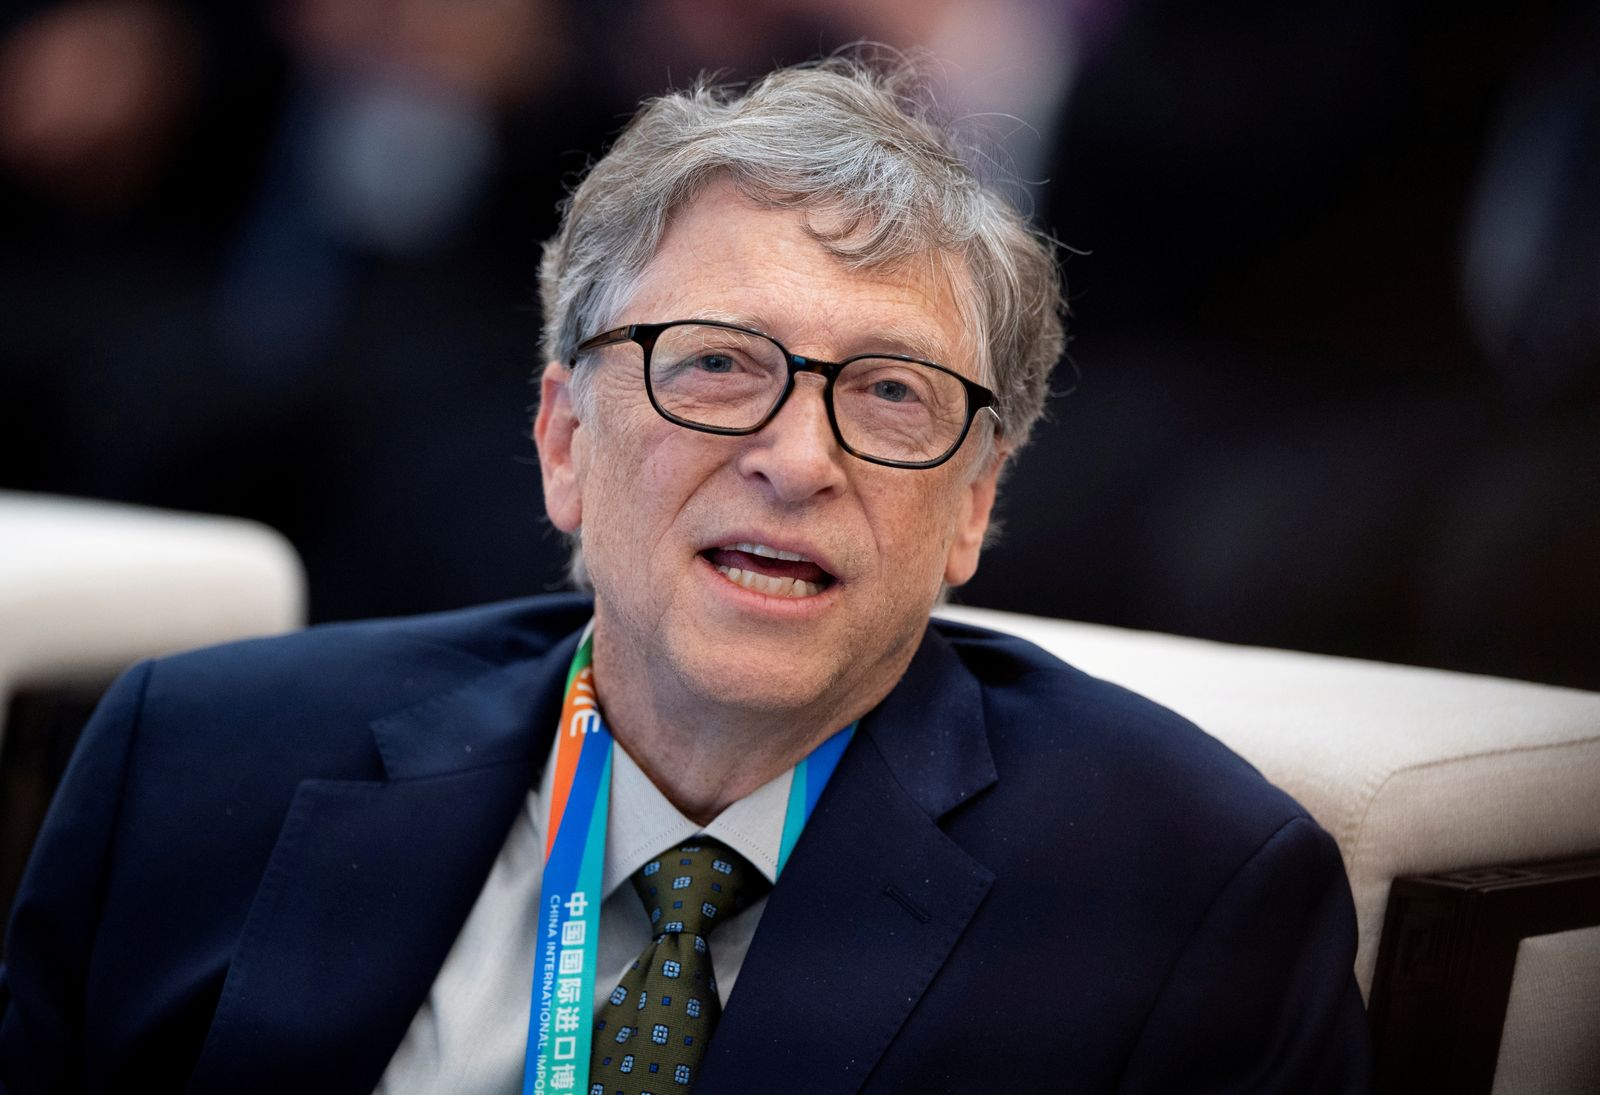 FILE PHOTO: Microsoft co-founder Bill Gates attends a forum in Shanghai